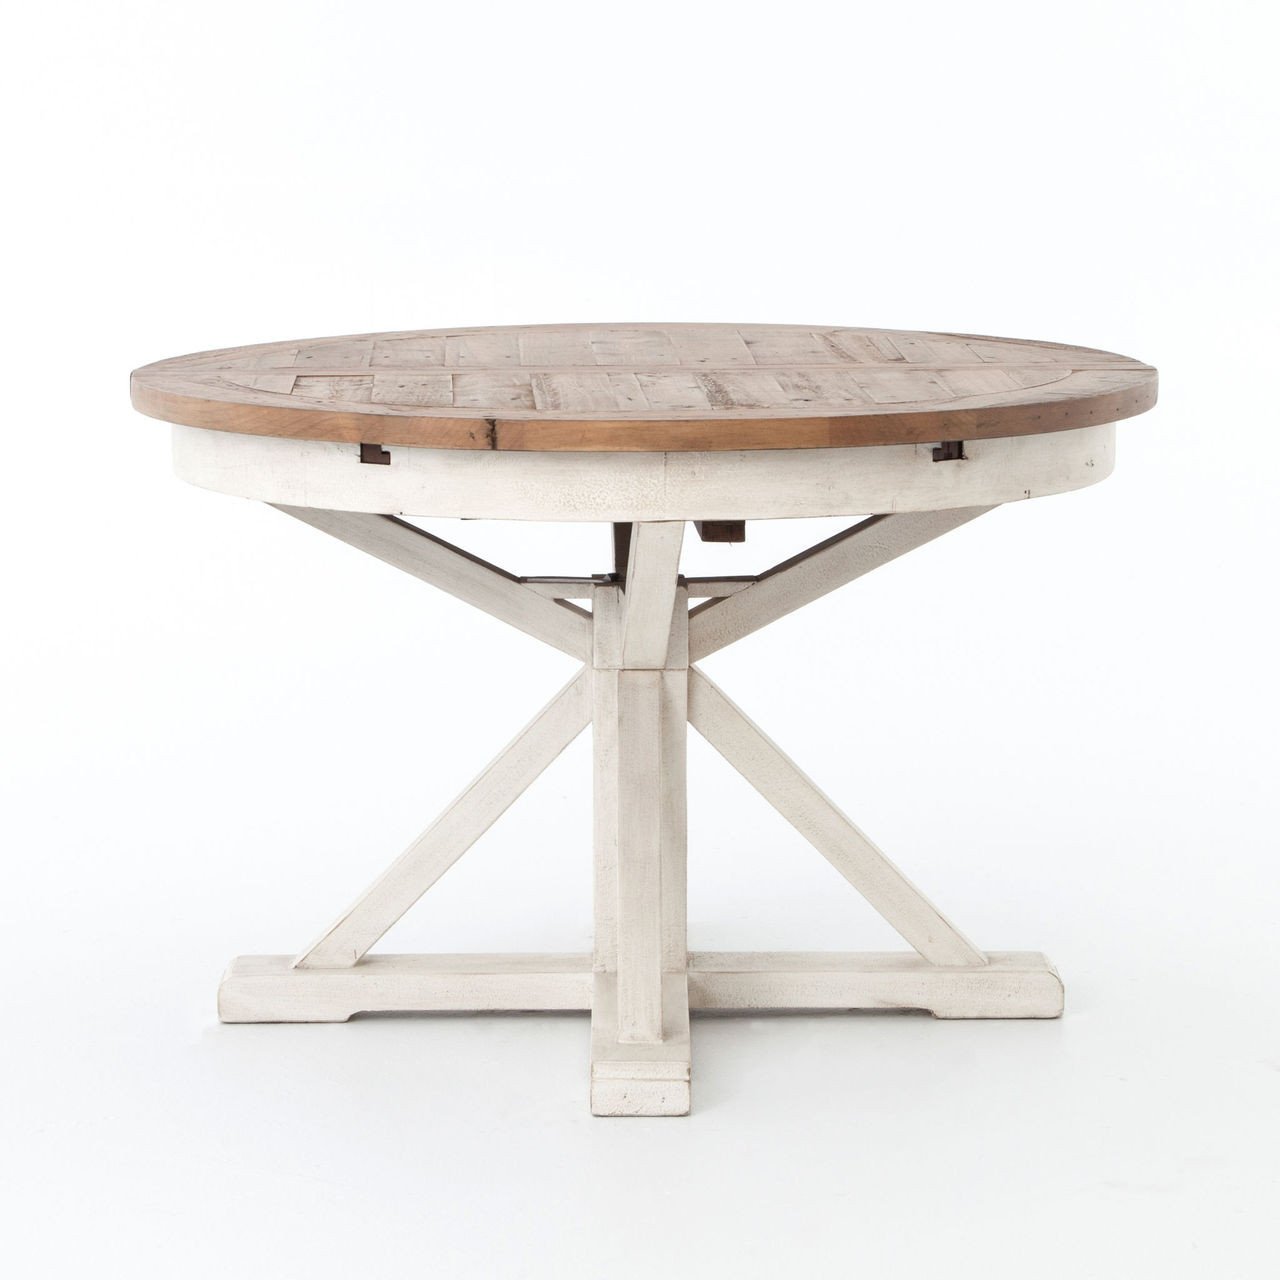 Cintra reclaimed wood white expandable round dining table 47 zin home White round dining table